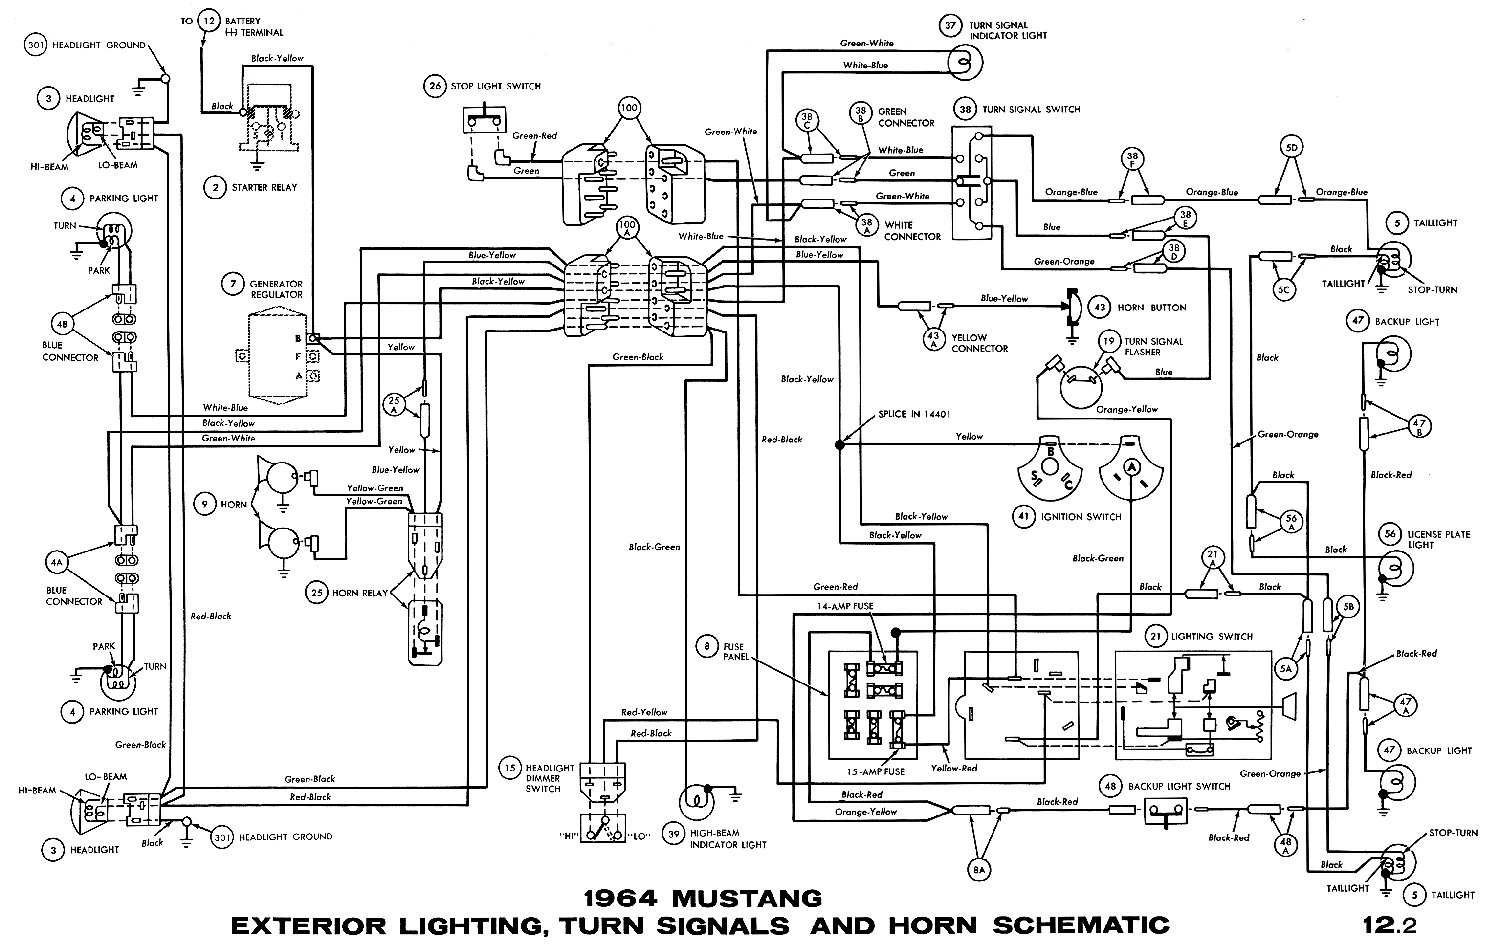 hight resolution of alternator wiring diagram 67 mustang free download image wiring 1968 mustang wiring diagram free wiring diagram